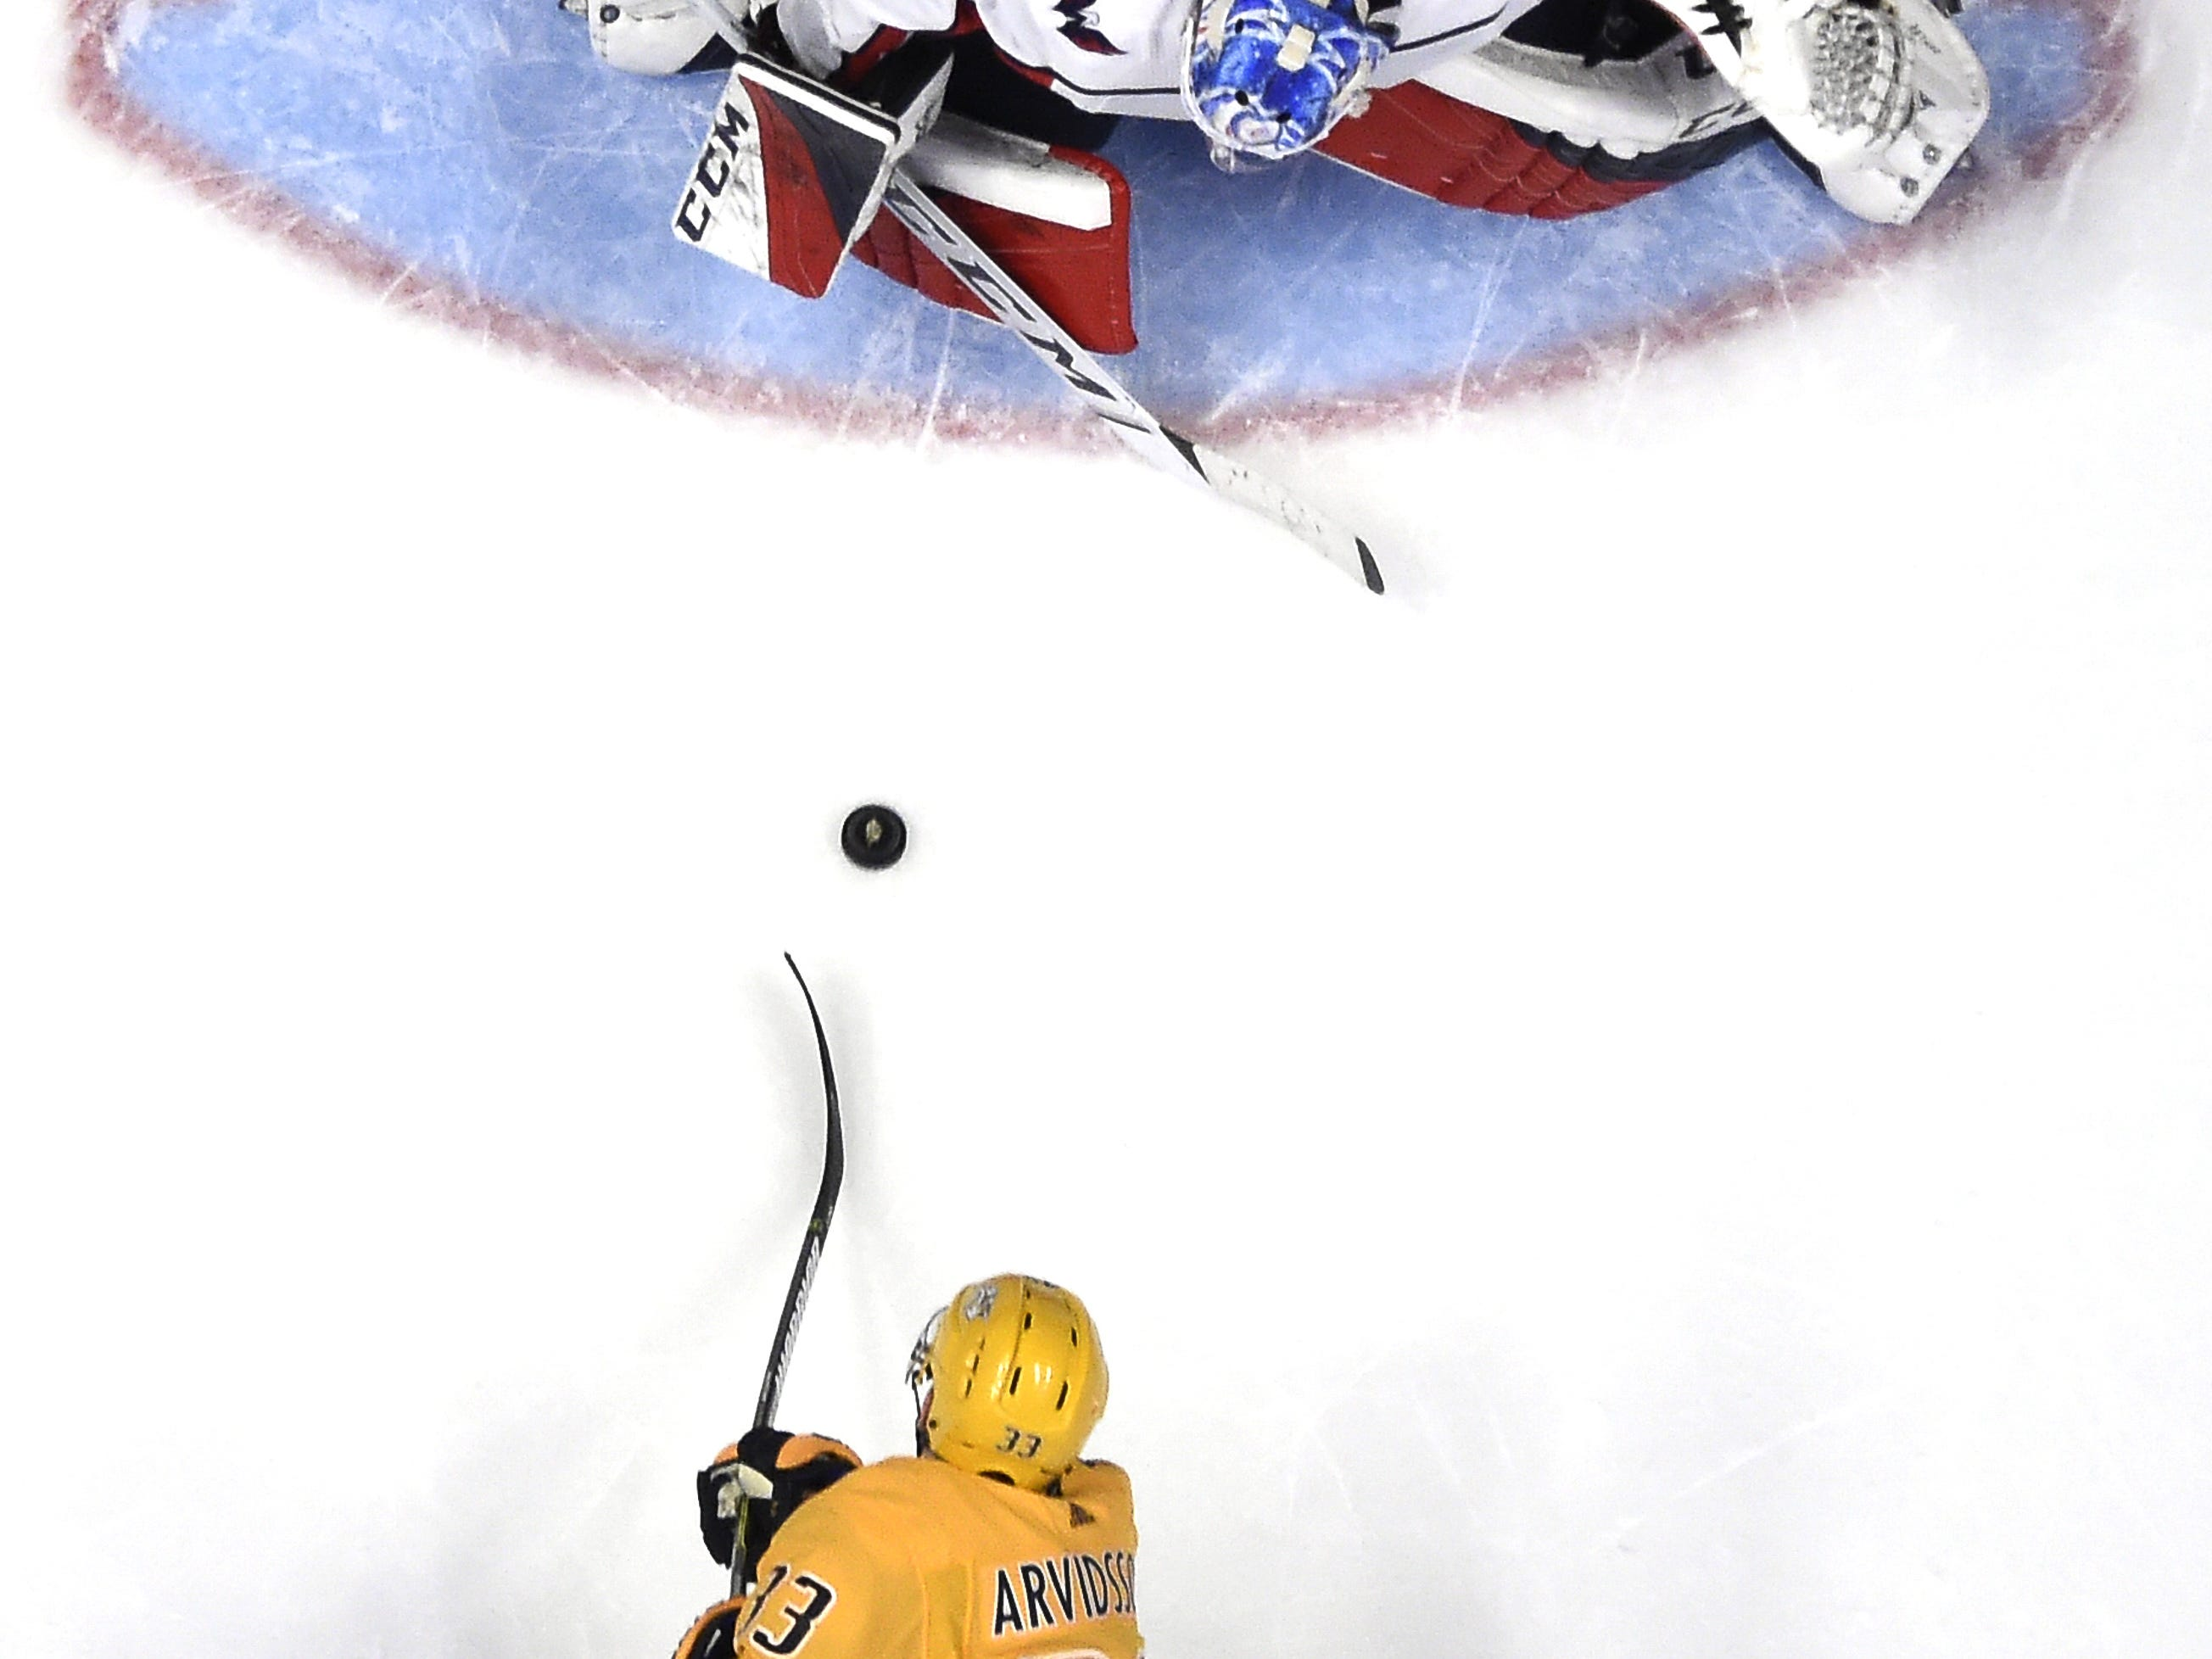 Jan. 15, 2019: Predators 7, Capitals 2 -- Predators right wing Viktor Arvidsson (33) shoots a goal past Capitals goaltender Pheonix Copley (1) during the second period at Bridgestone Arena Tuesday, Jan. 15, 2019, in Nashville, Tenn.